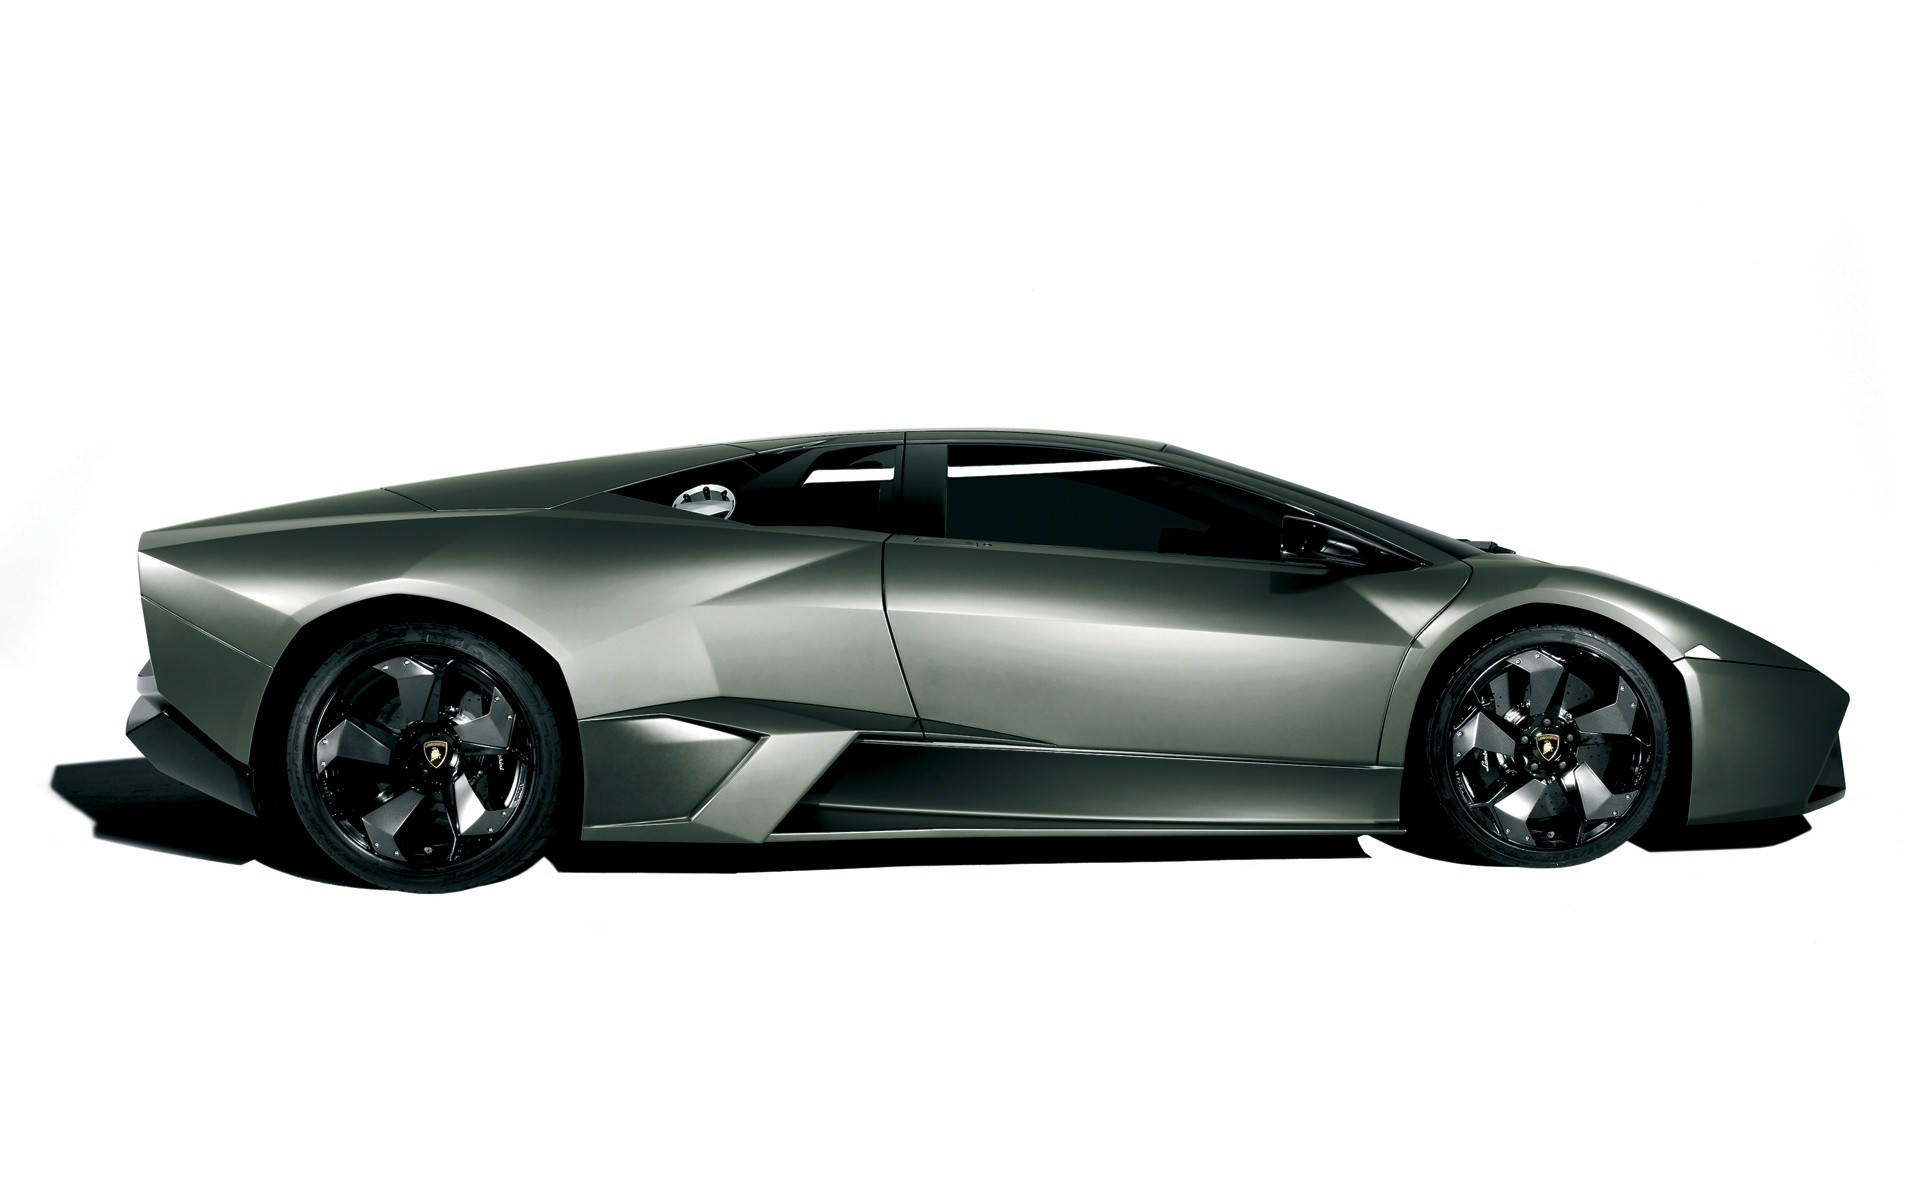 Lamborghini Reventon Side View 3D Wide